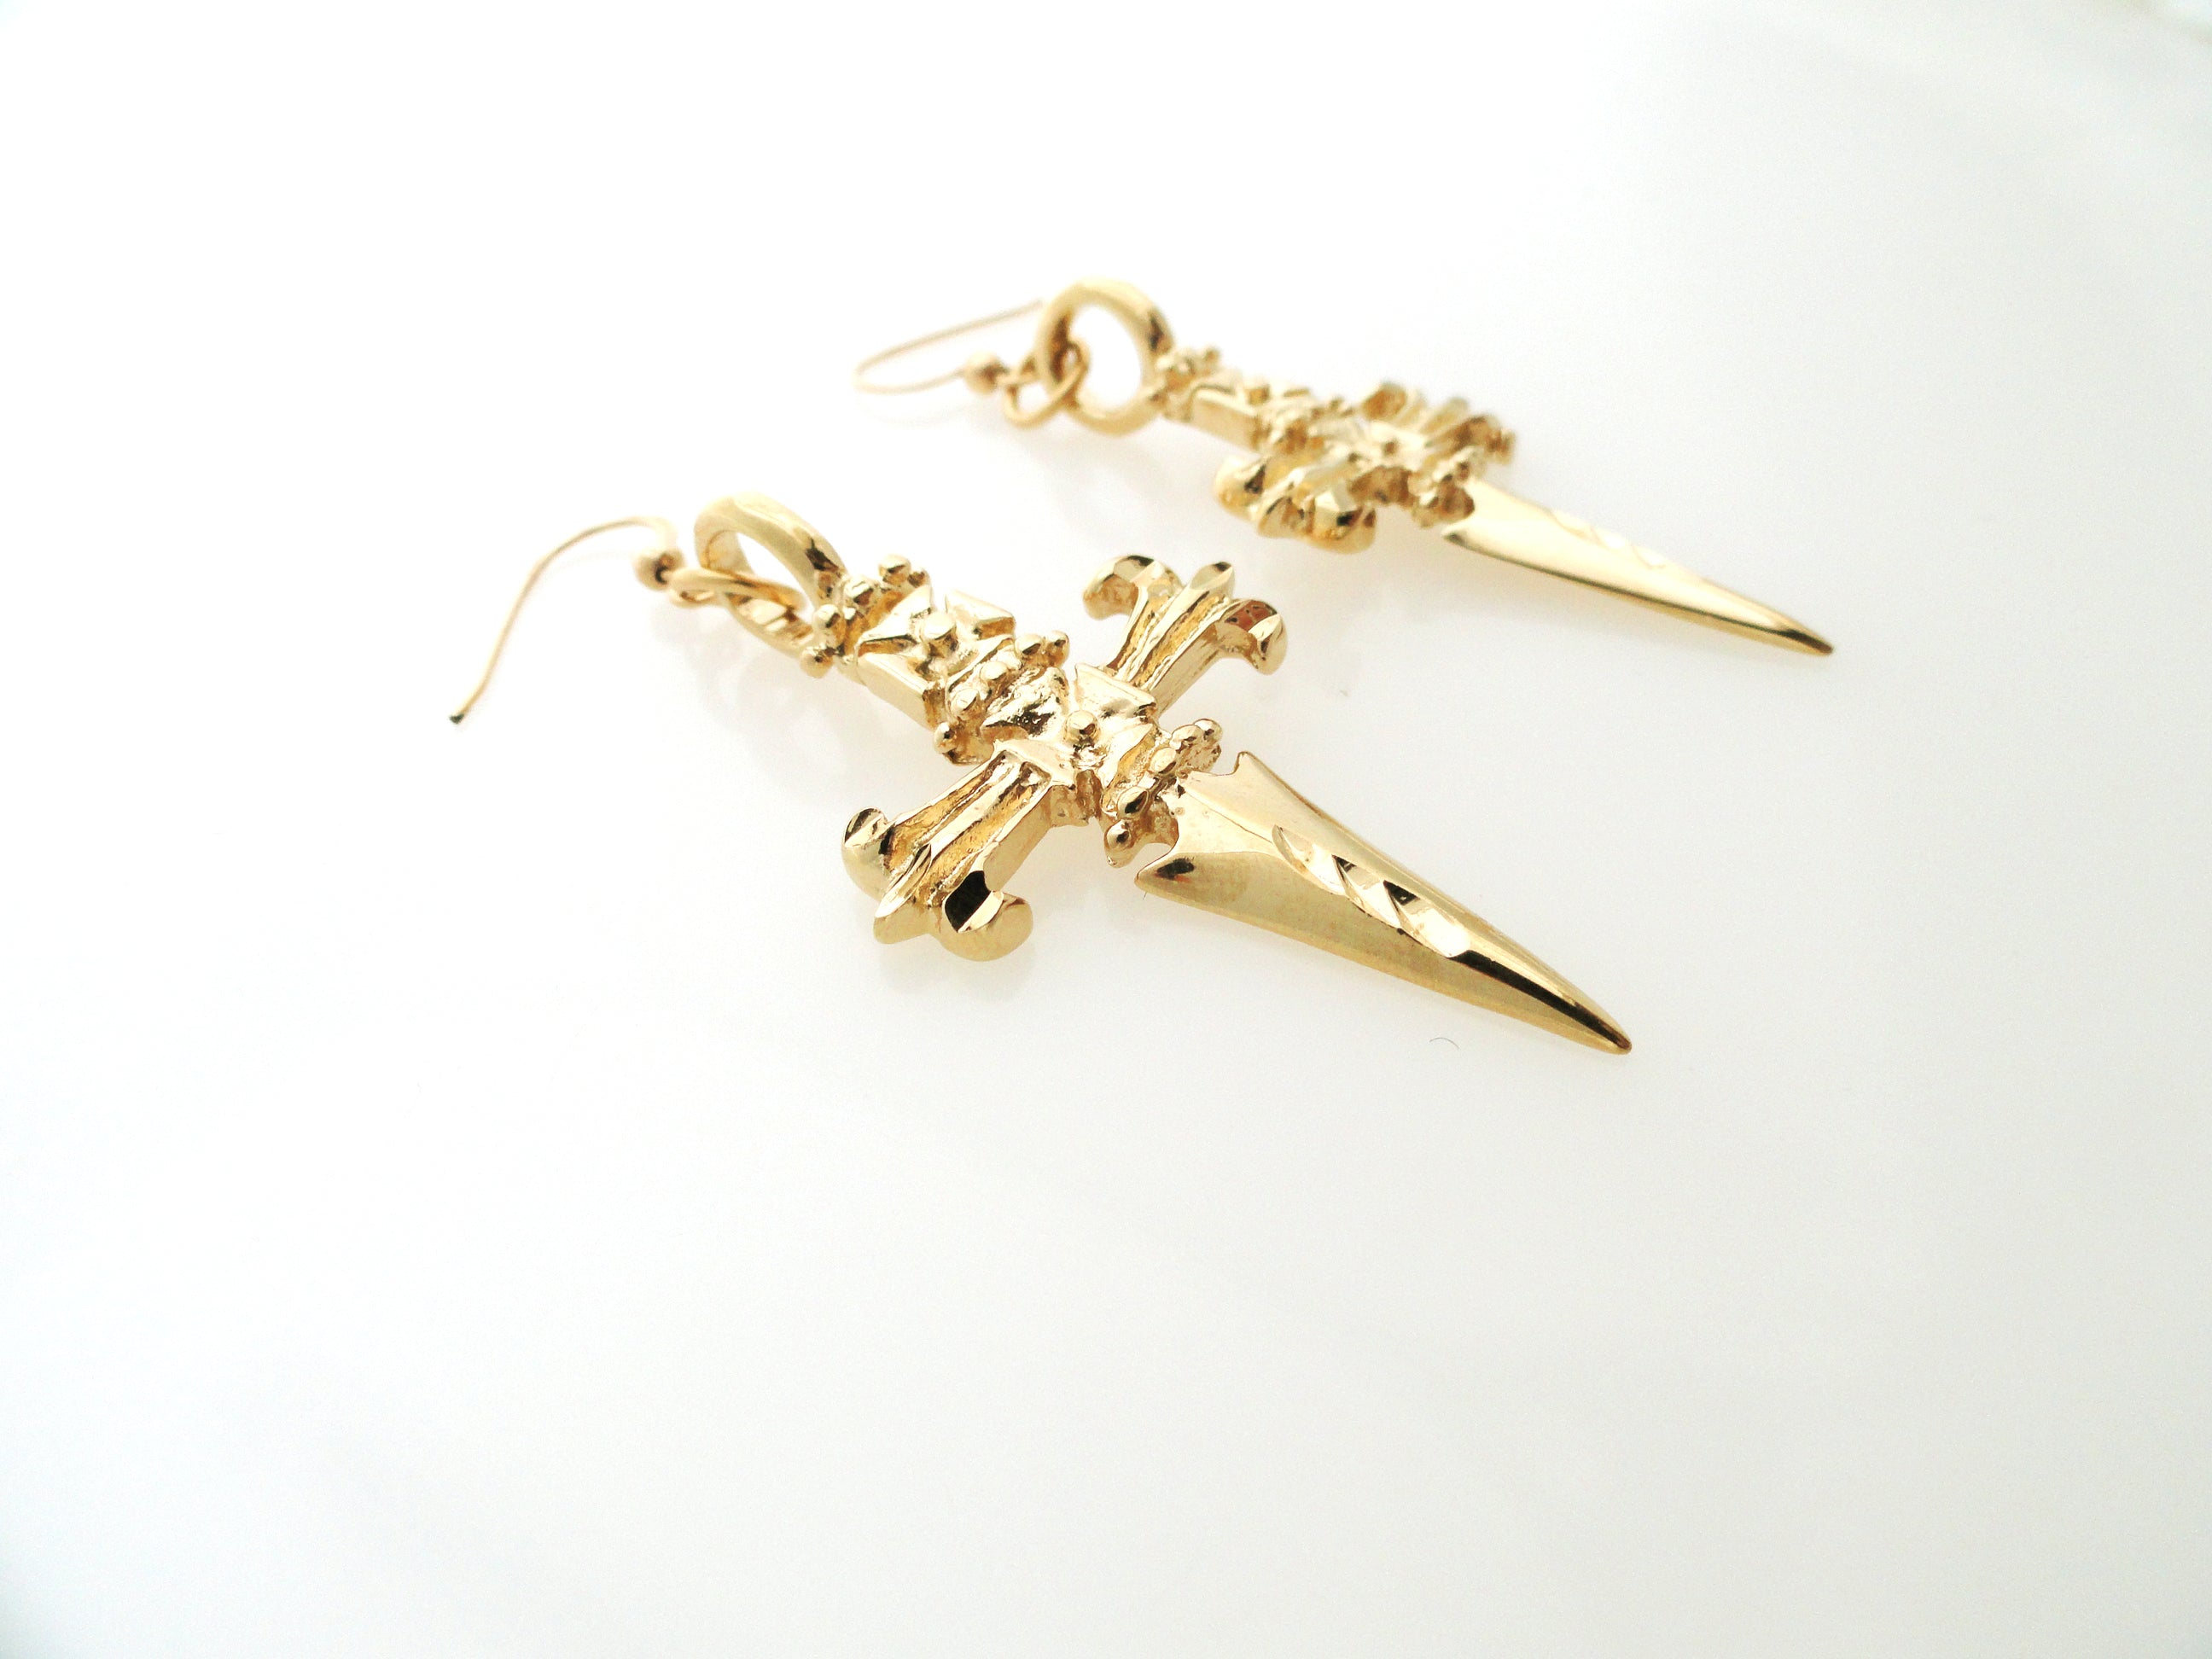 24kt Gold plated dagger earrings